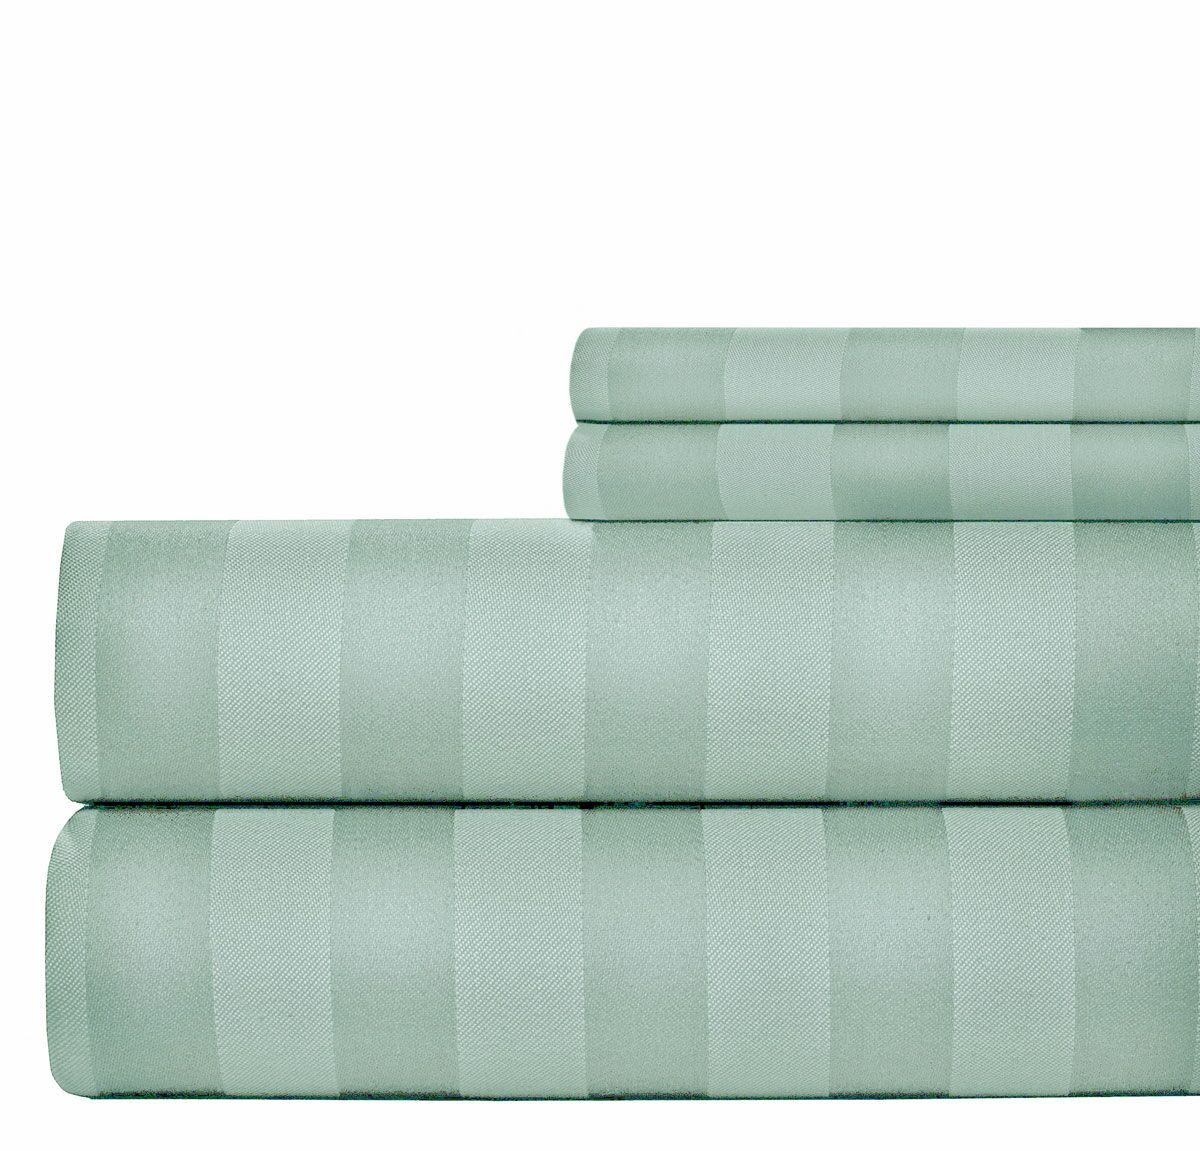 4 Piece 1000 Thread Count Sheet Set Size: Queen, Color: Blue